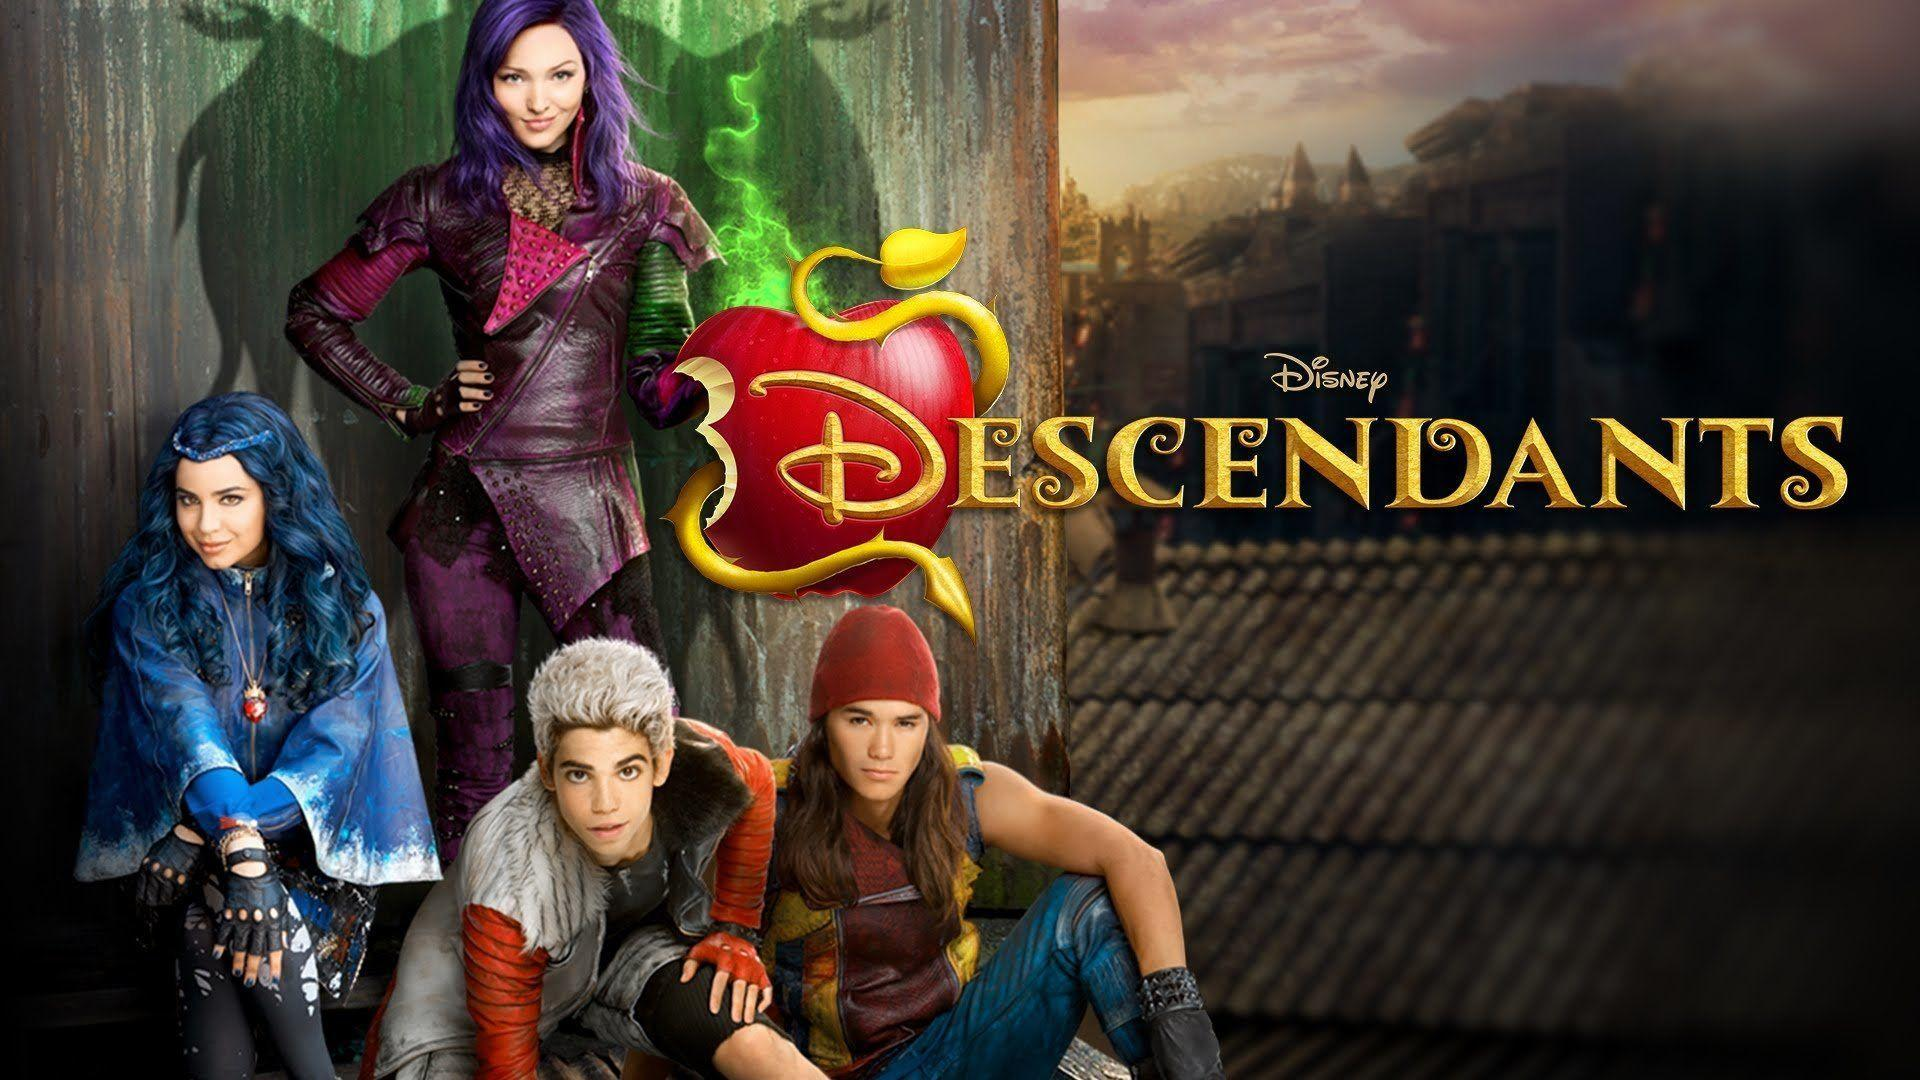 Is the Mobile Background Imaging the Descendants wallpaper?